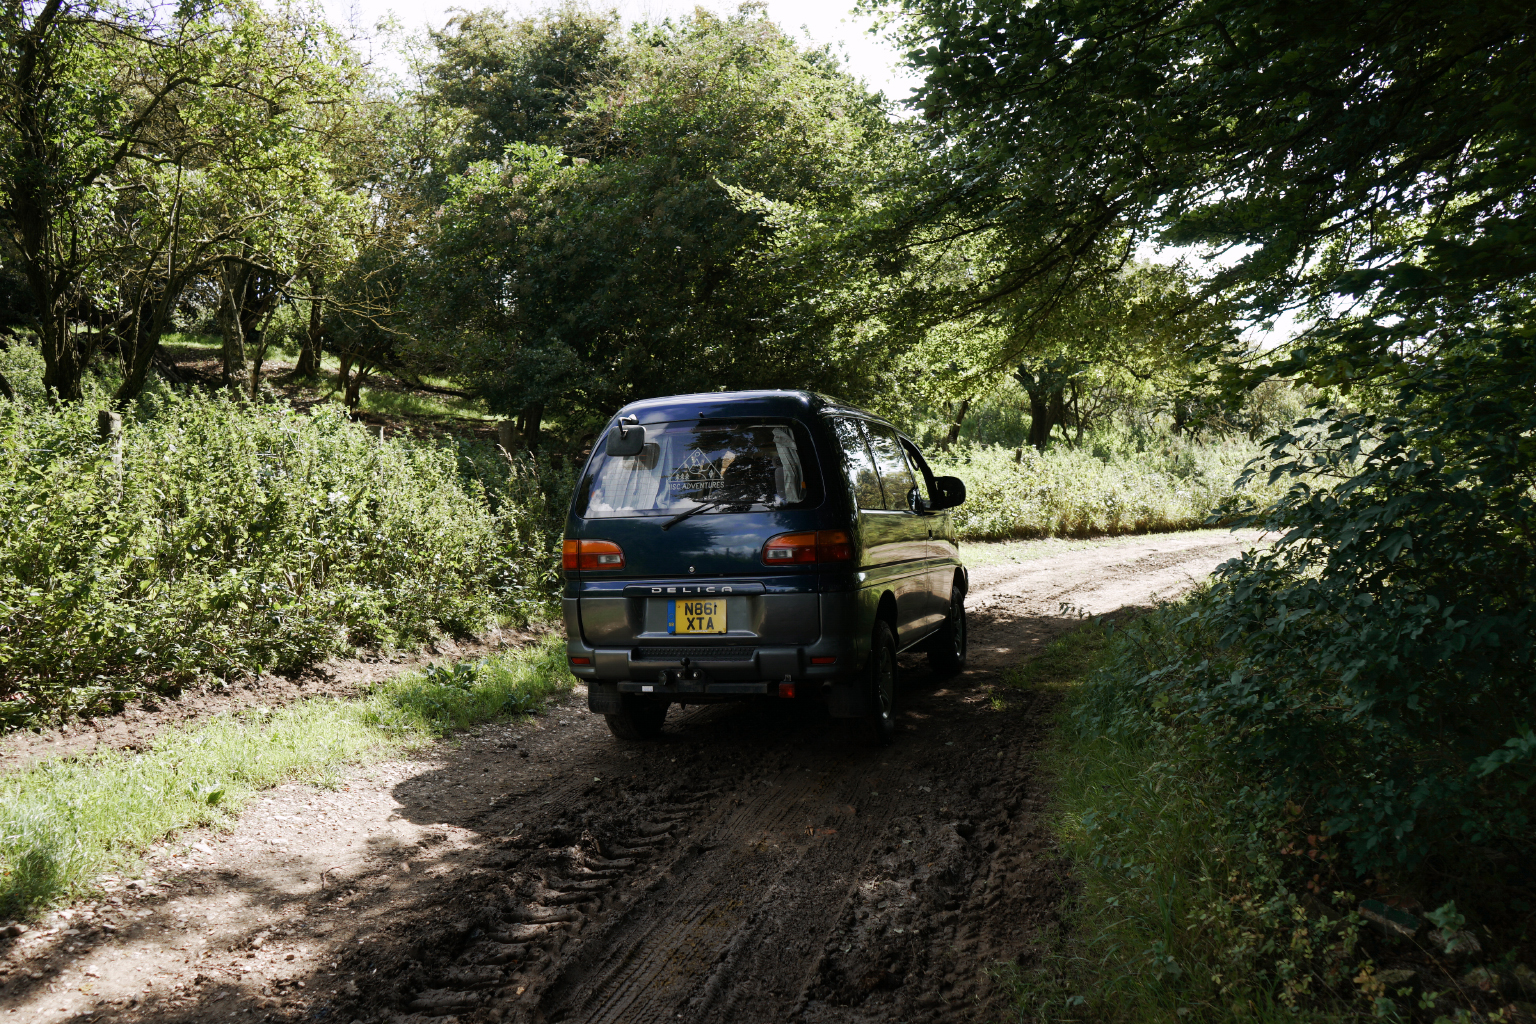 Little bit of off-roading to test it all works...